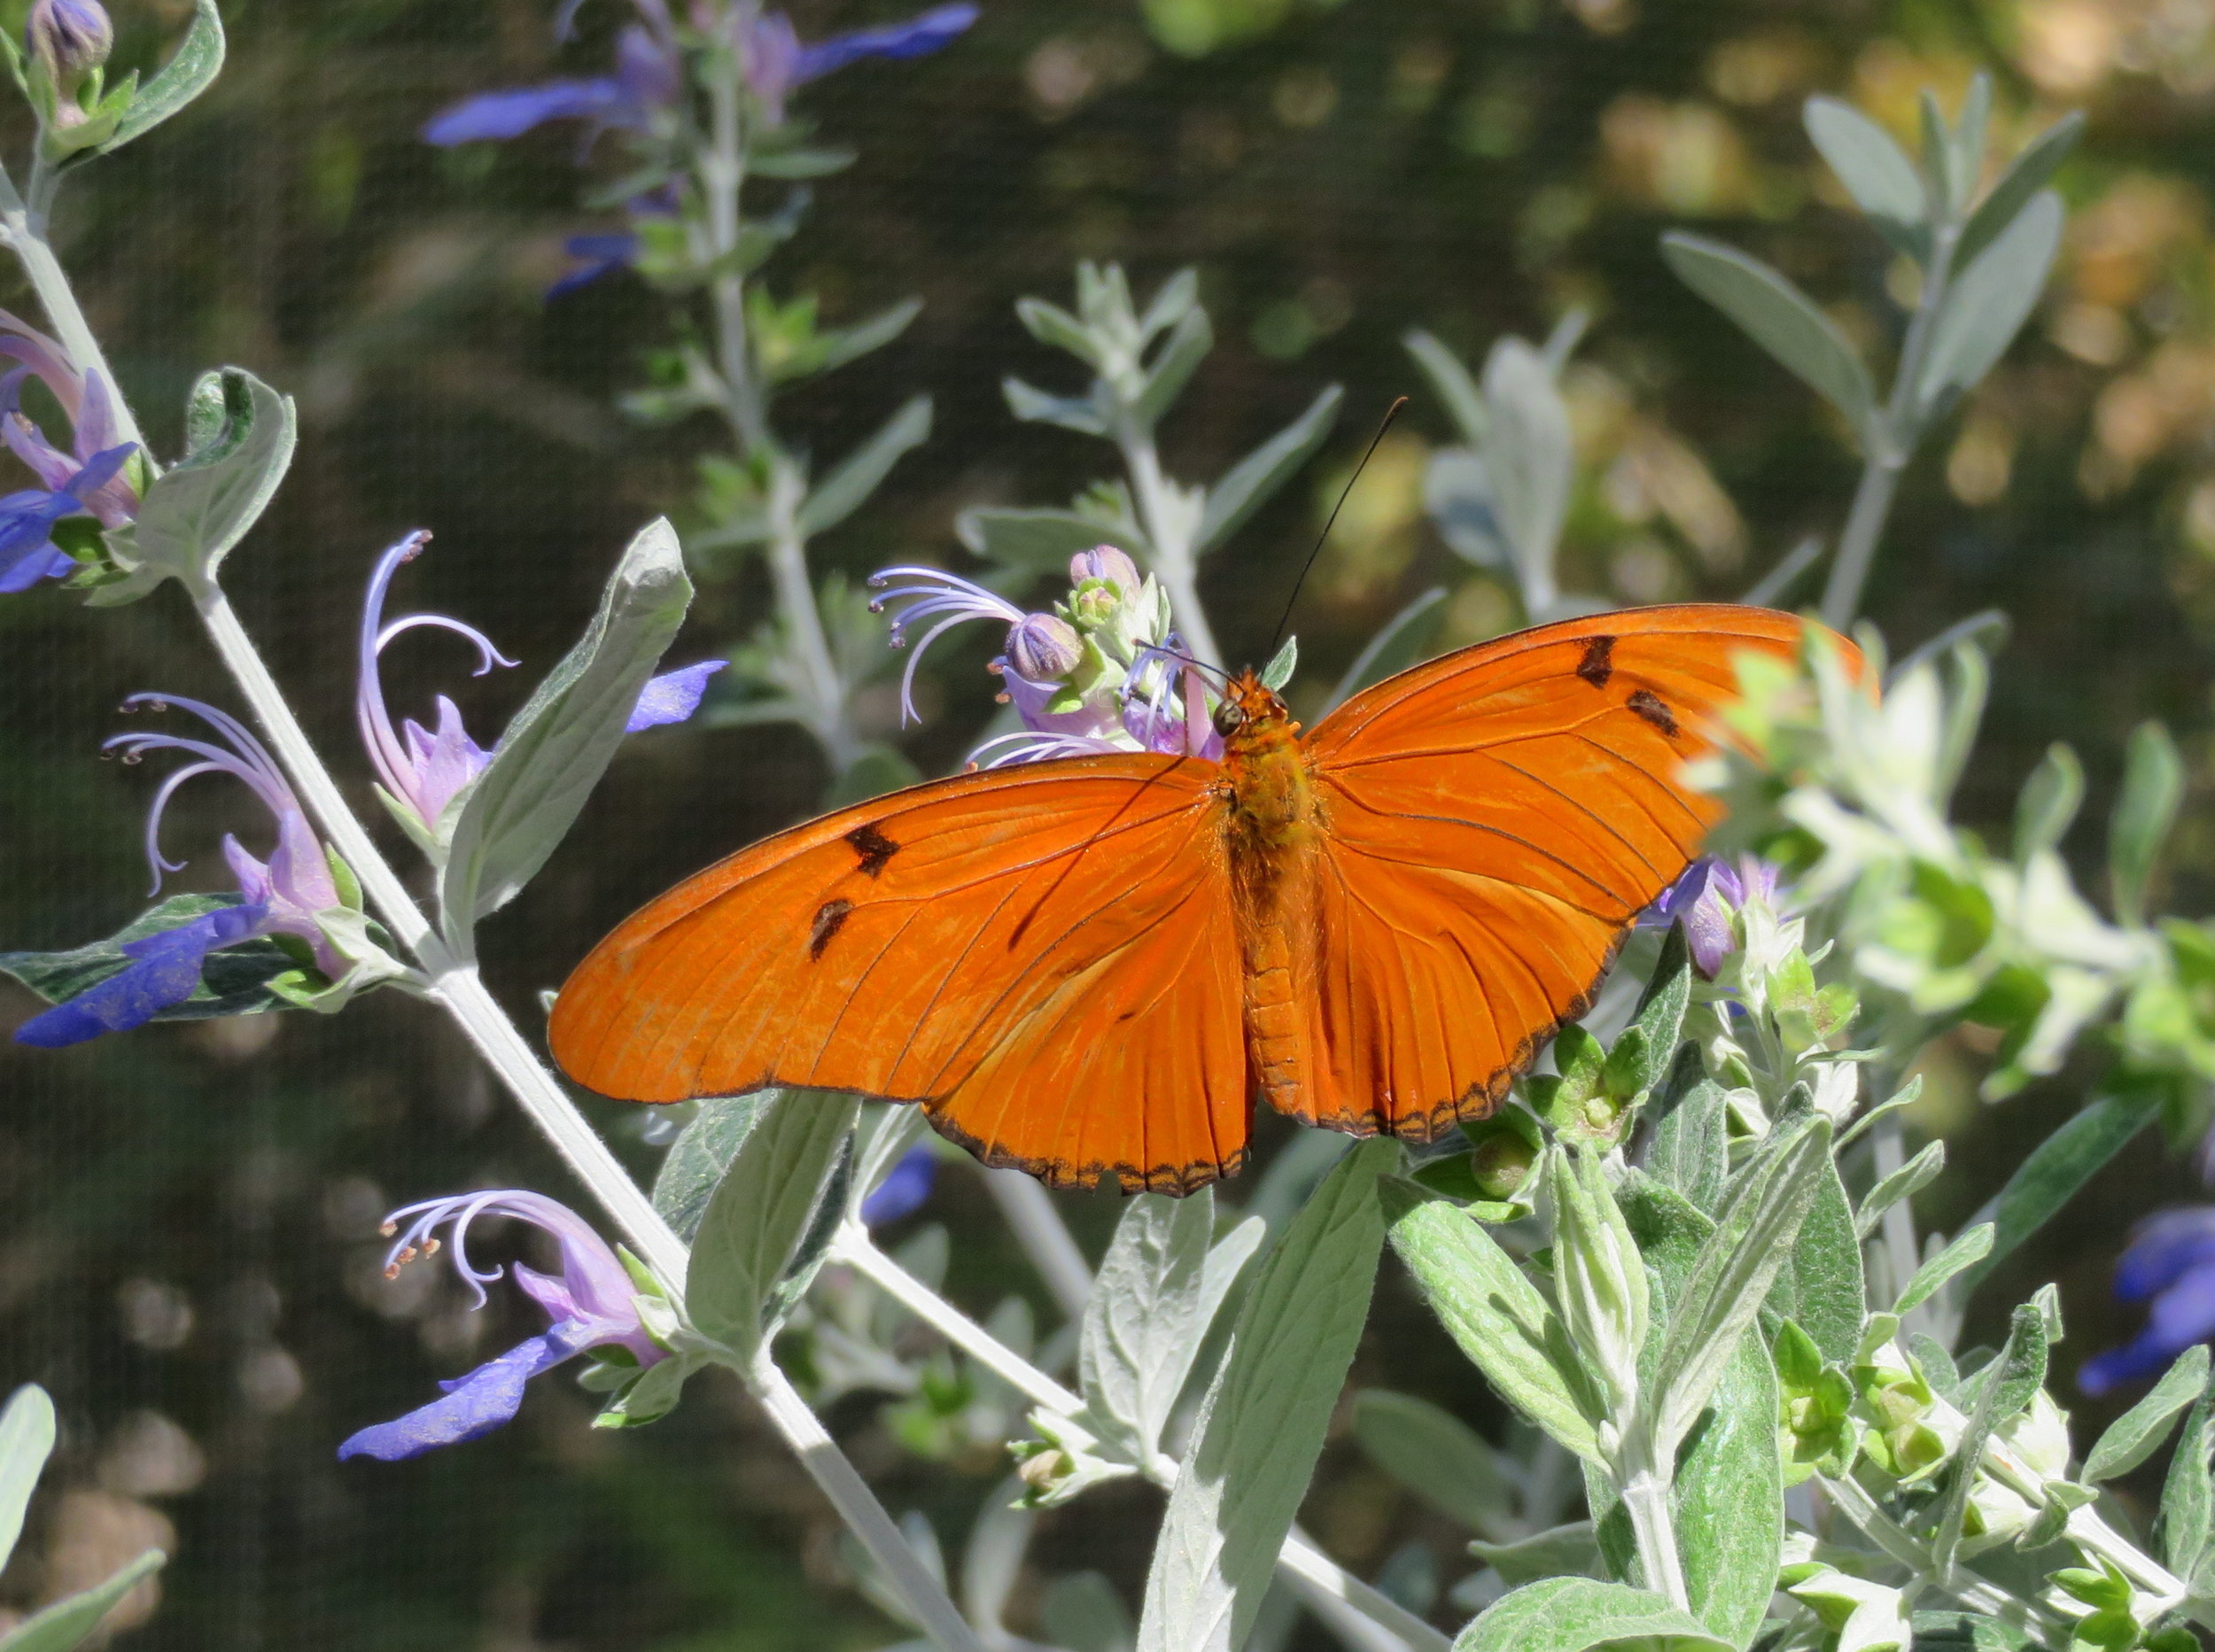 Julias seemed to be the most abundant and active butterflies currently in residence.